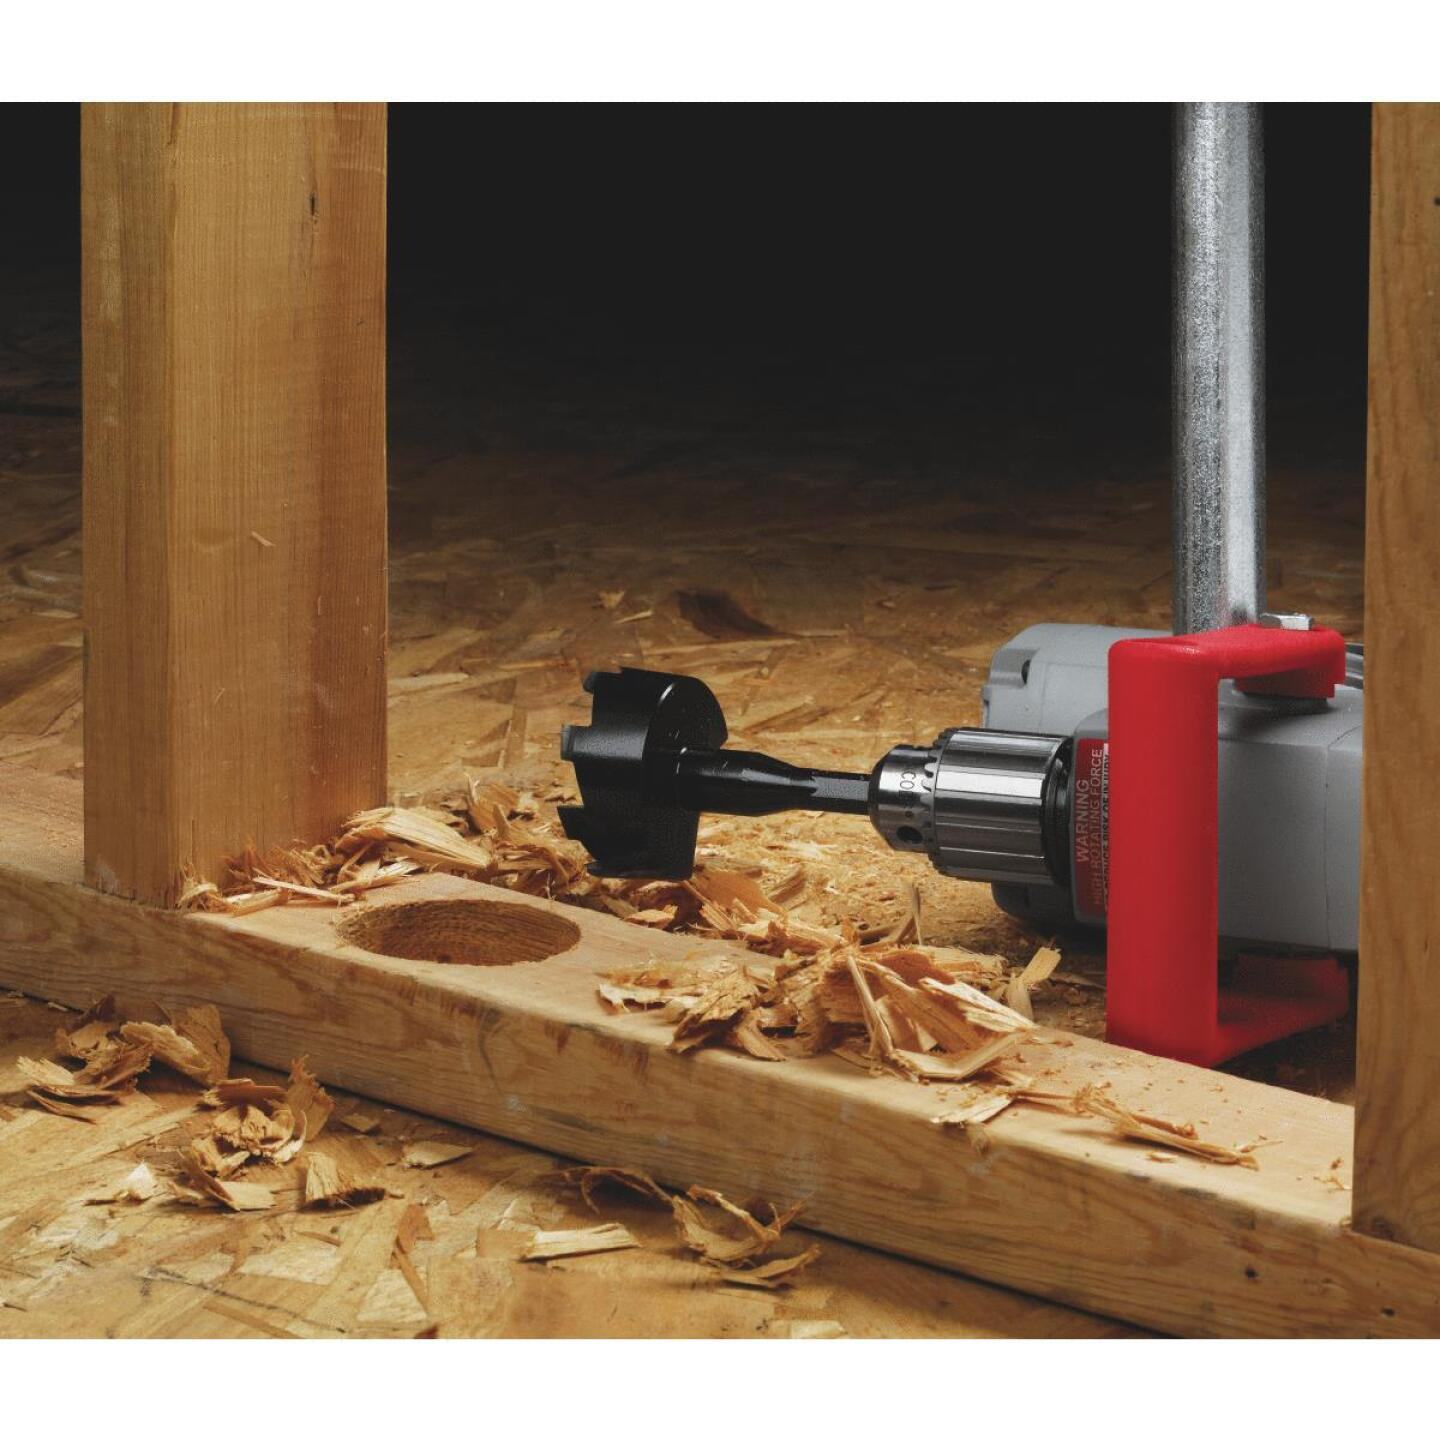 Milwaukee Hole Hawg 1/2 in. 7.5-Amp Keyed Electric Angle Drill Image 2